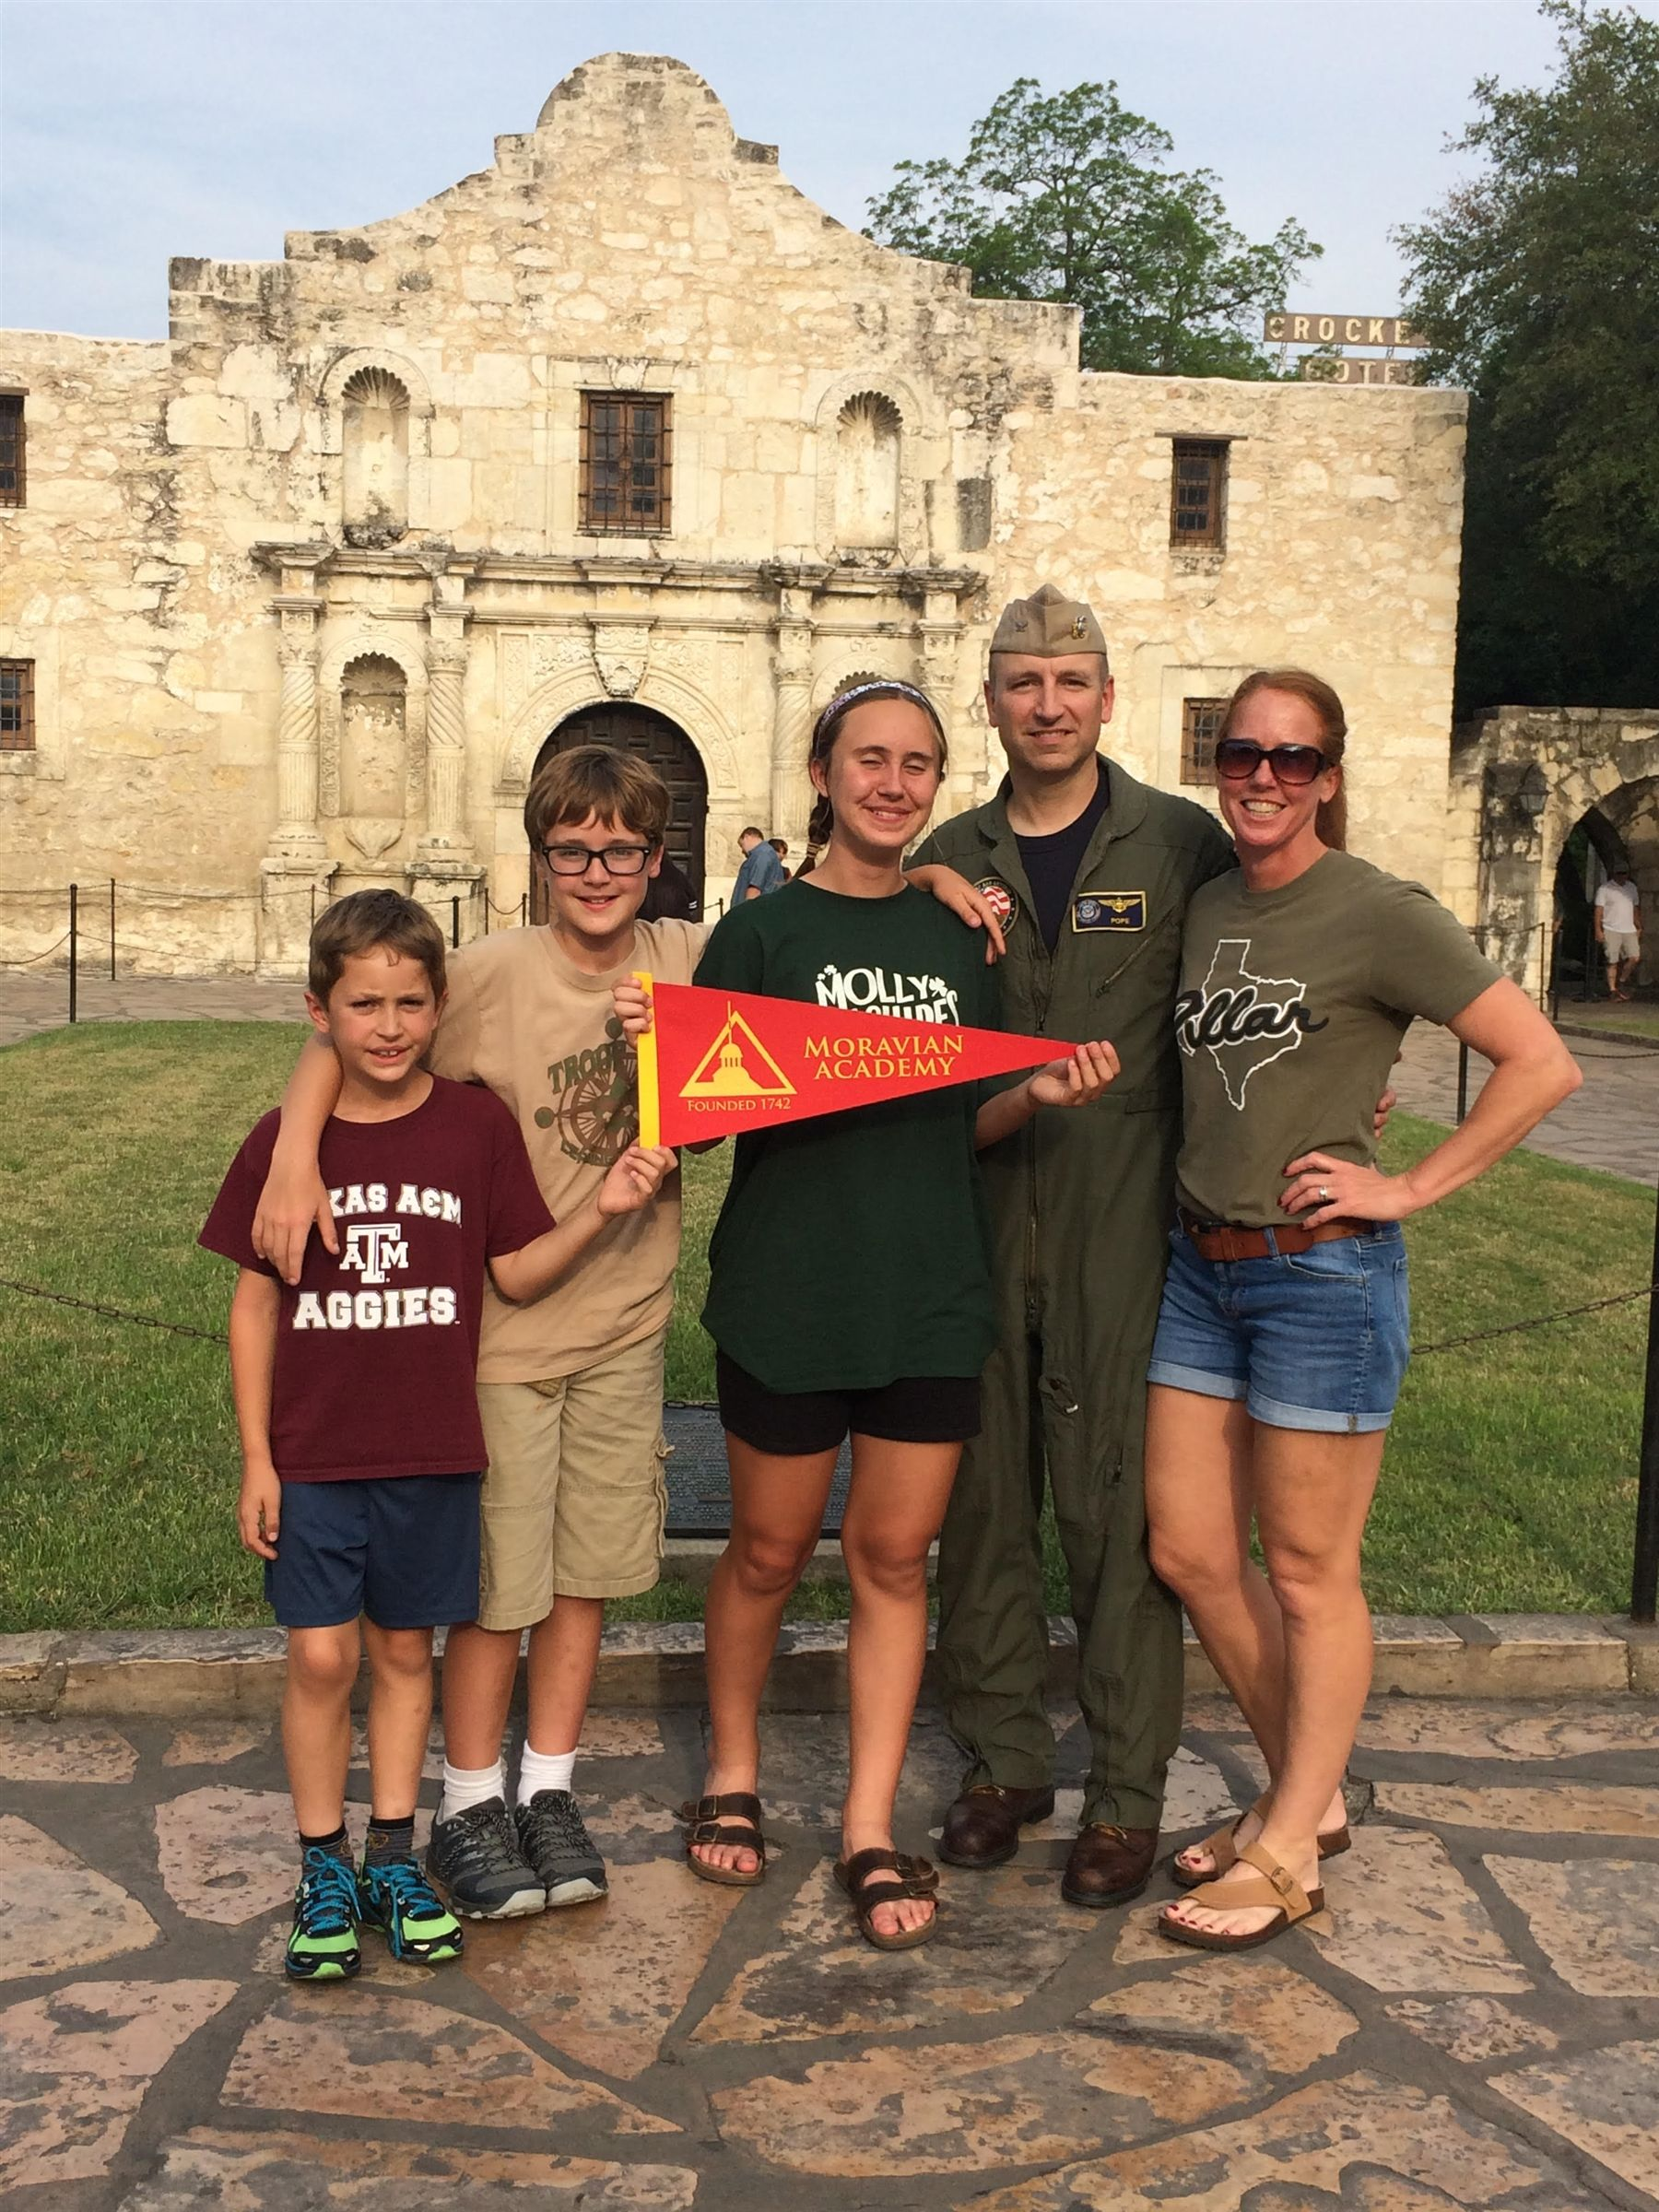 Greetings from the Alamo in Texas from the Bishop family! L-R: Samuel, Thomas, Kerry, Andy '89, and Linda